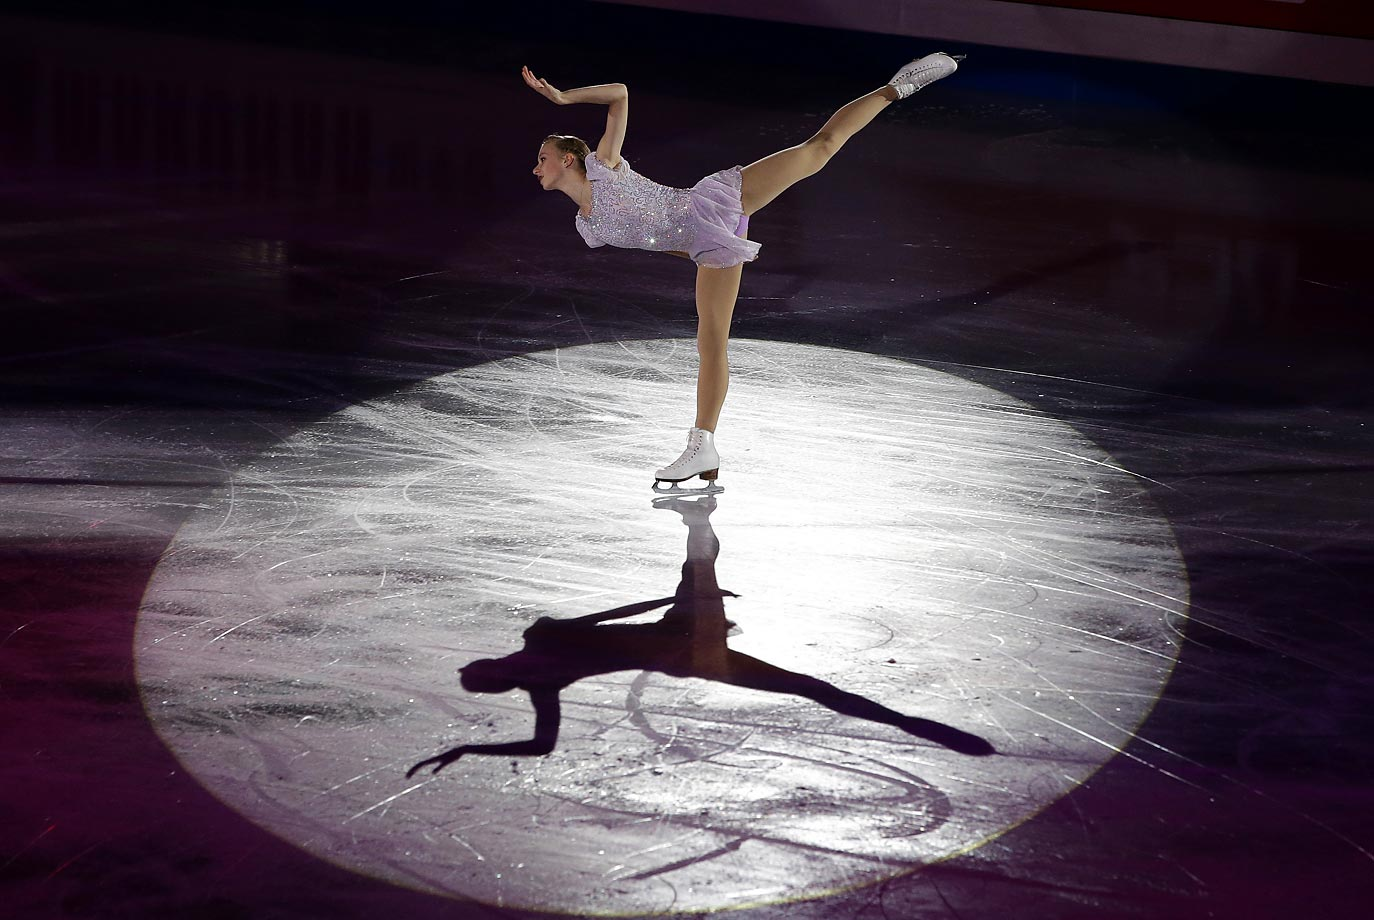 Polina Edmunds of the United States performs during the gala exhibition in the ISU Four Continents Figure Skating Championships in Seoul, South Korea.